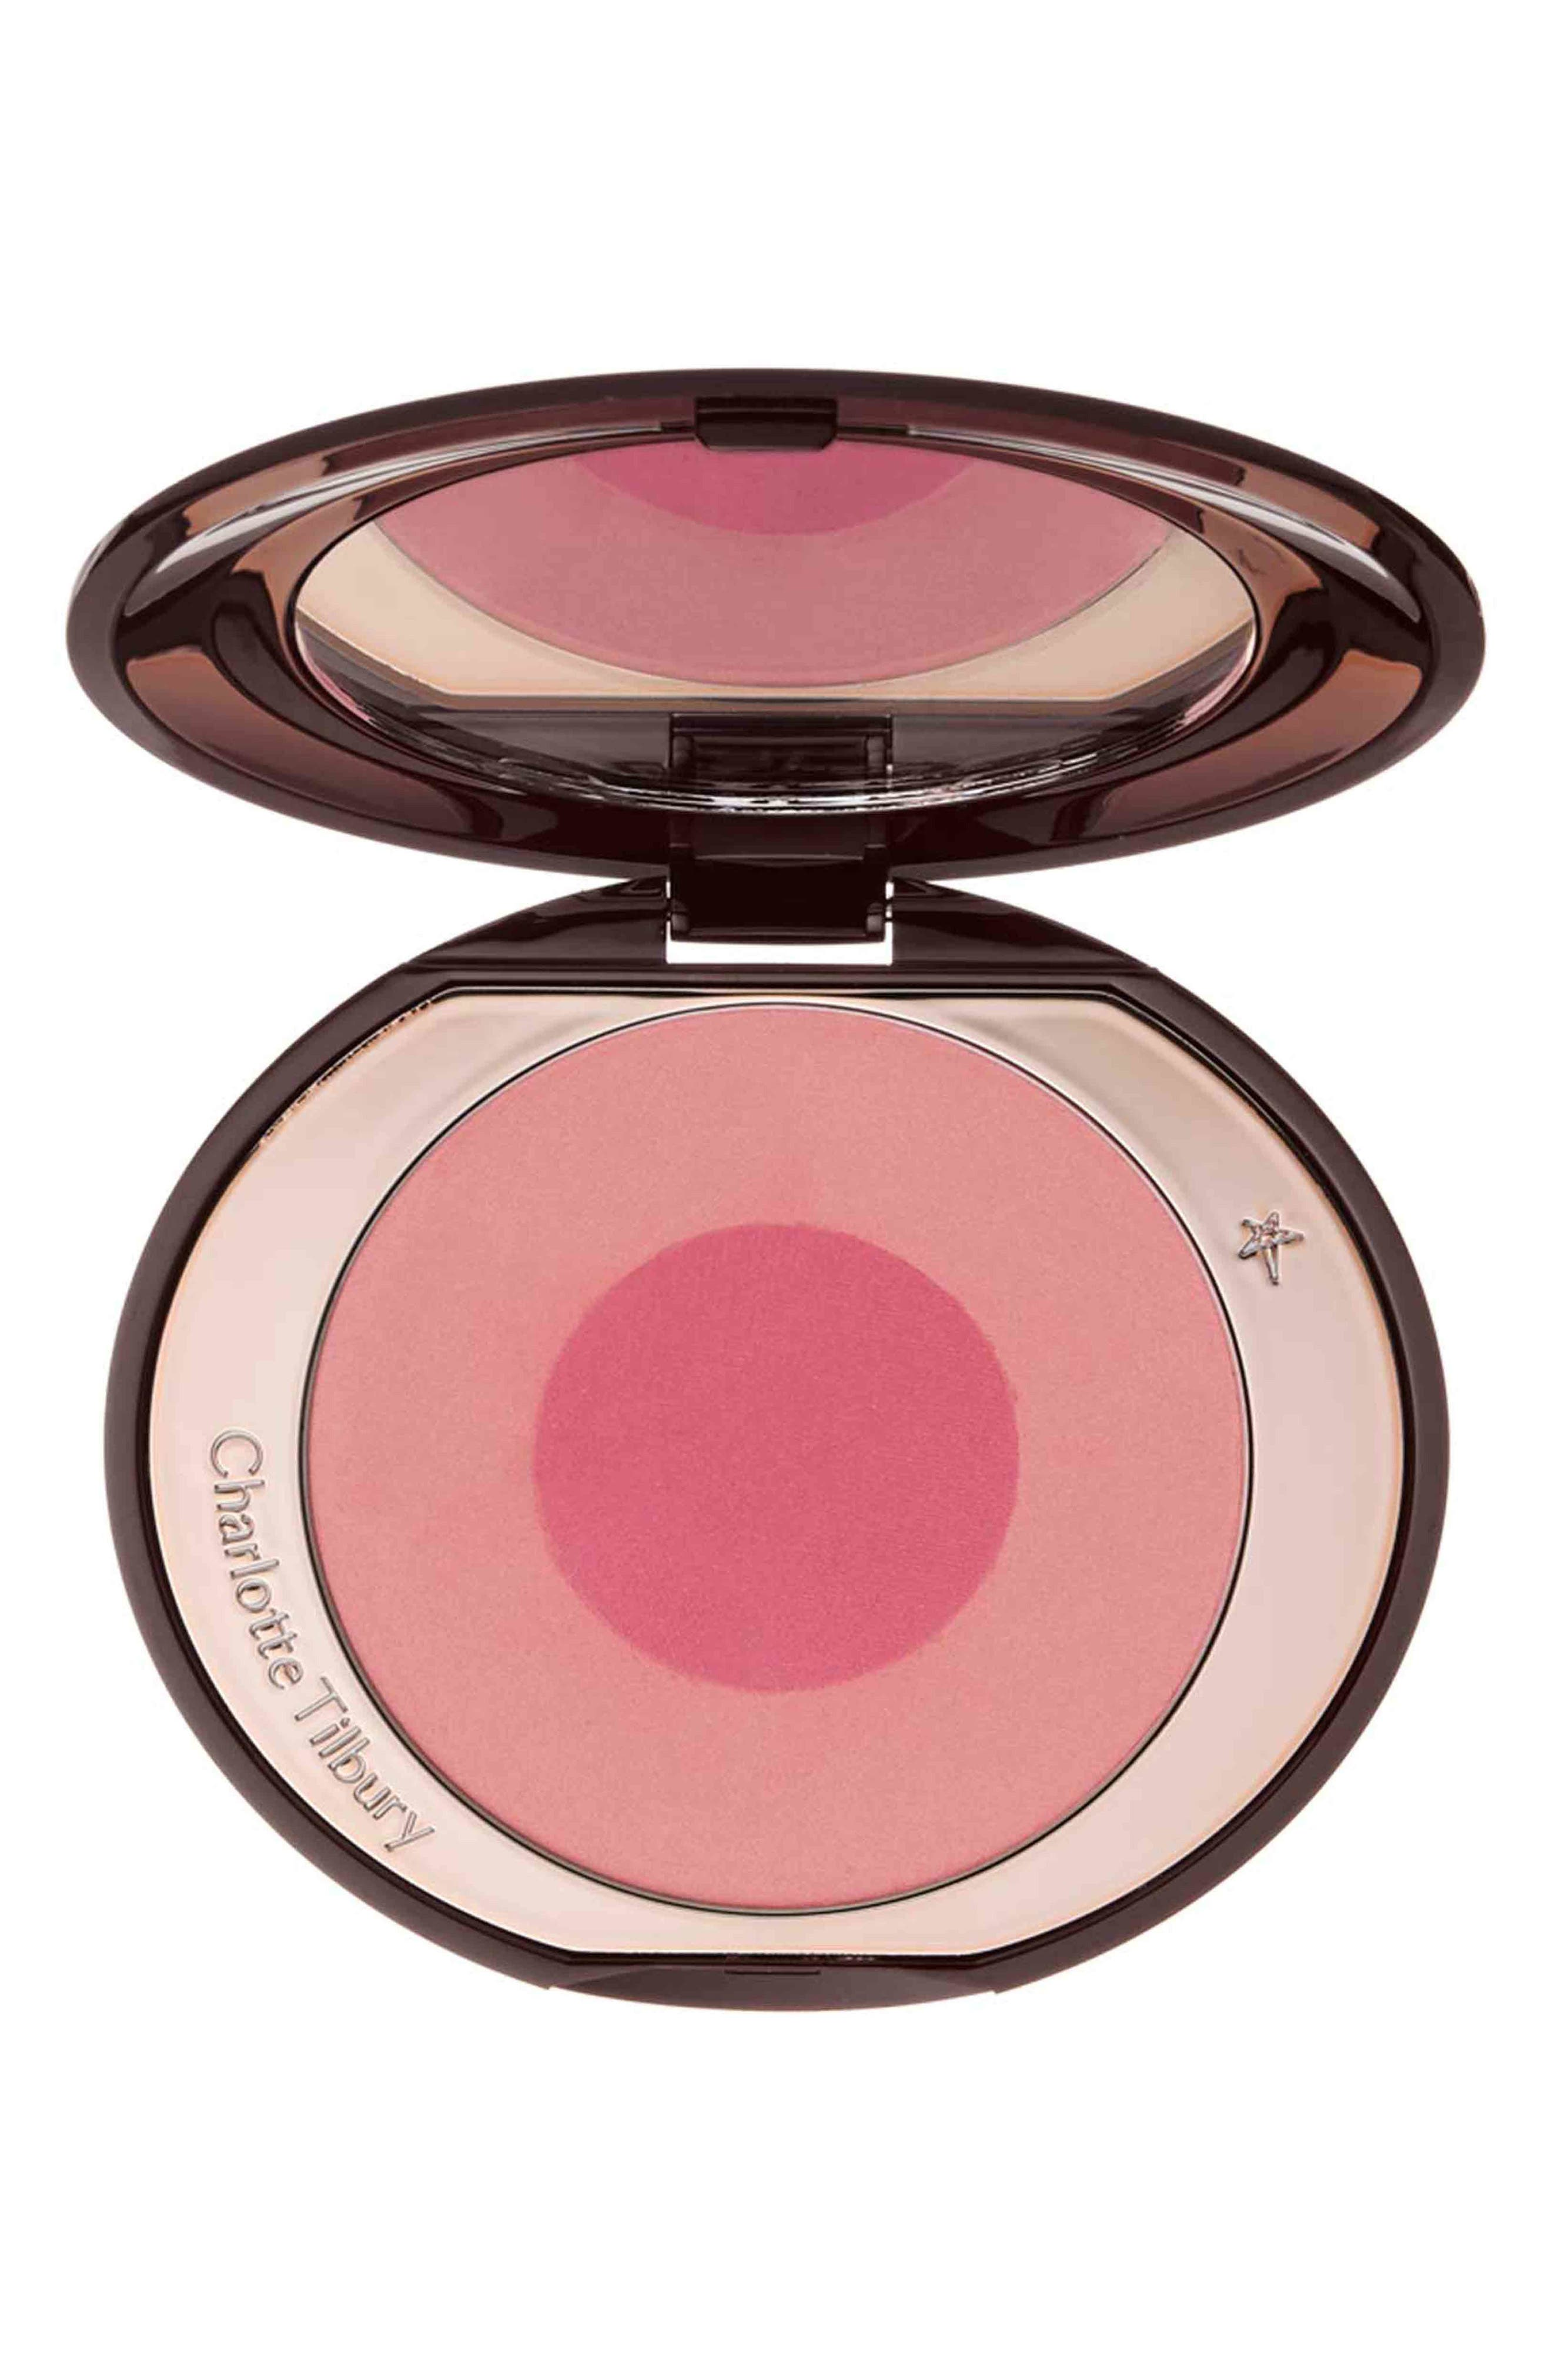 Cheek to Chic Blush,                         Main,                         color, LOVE IS THE DRUG